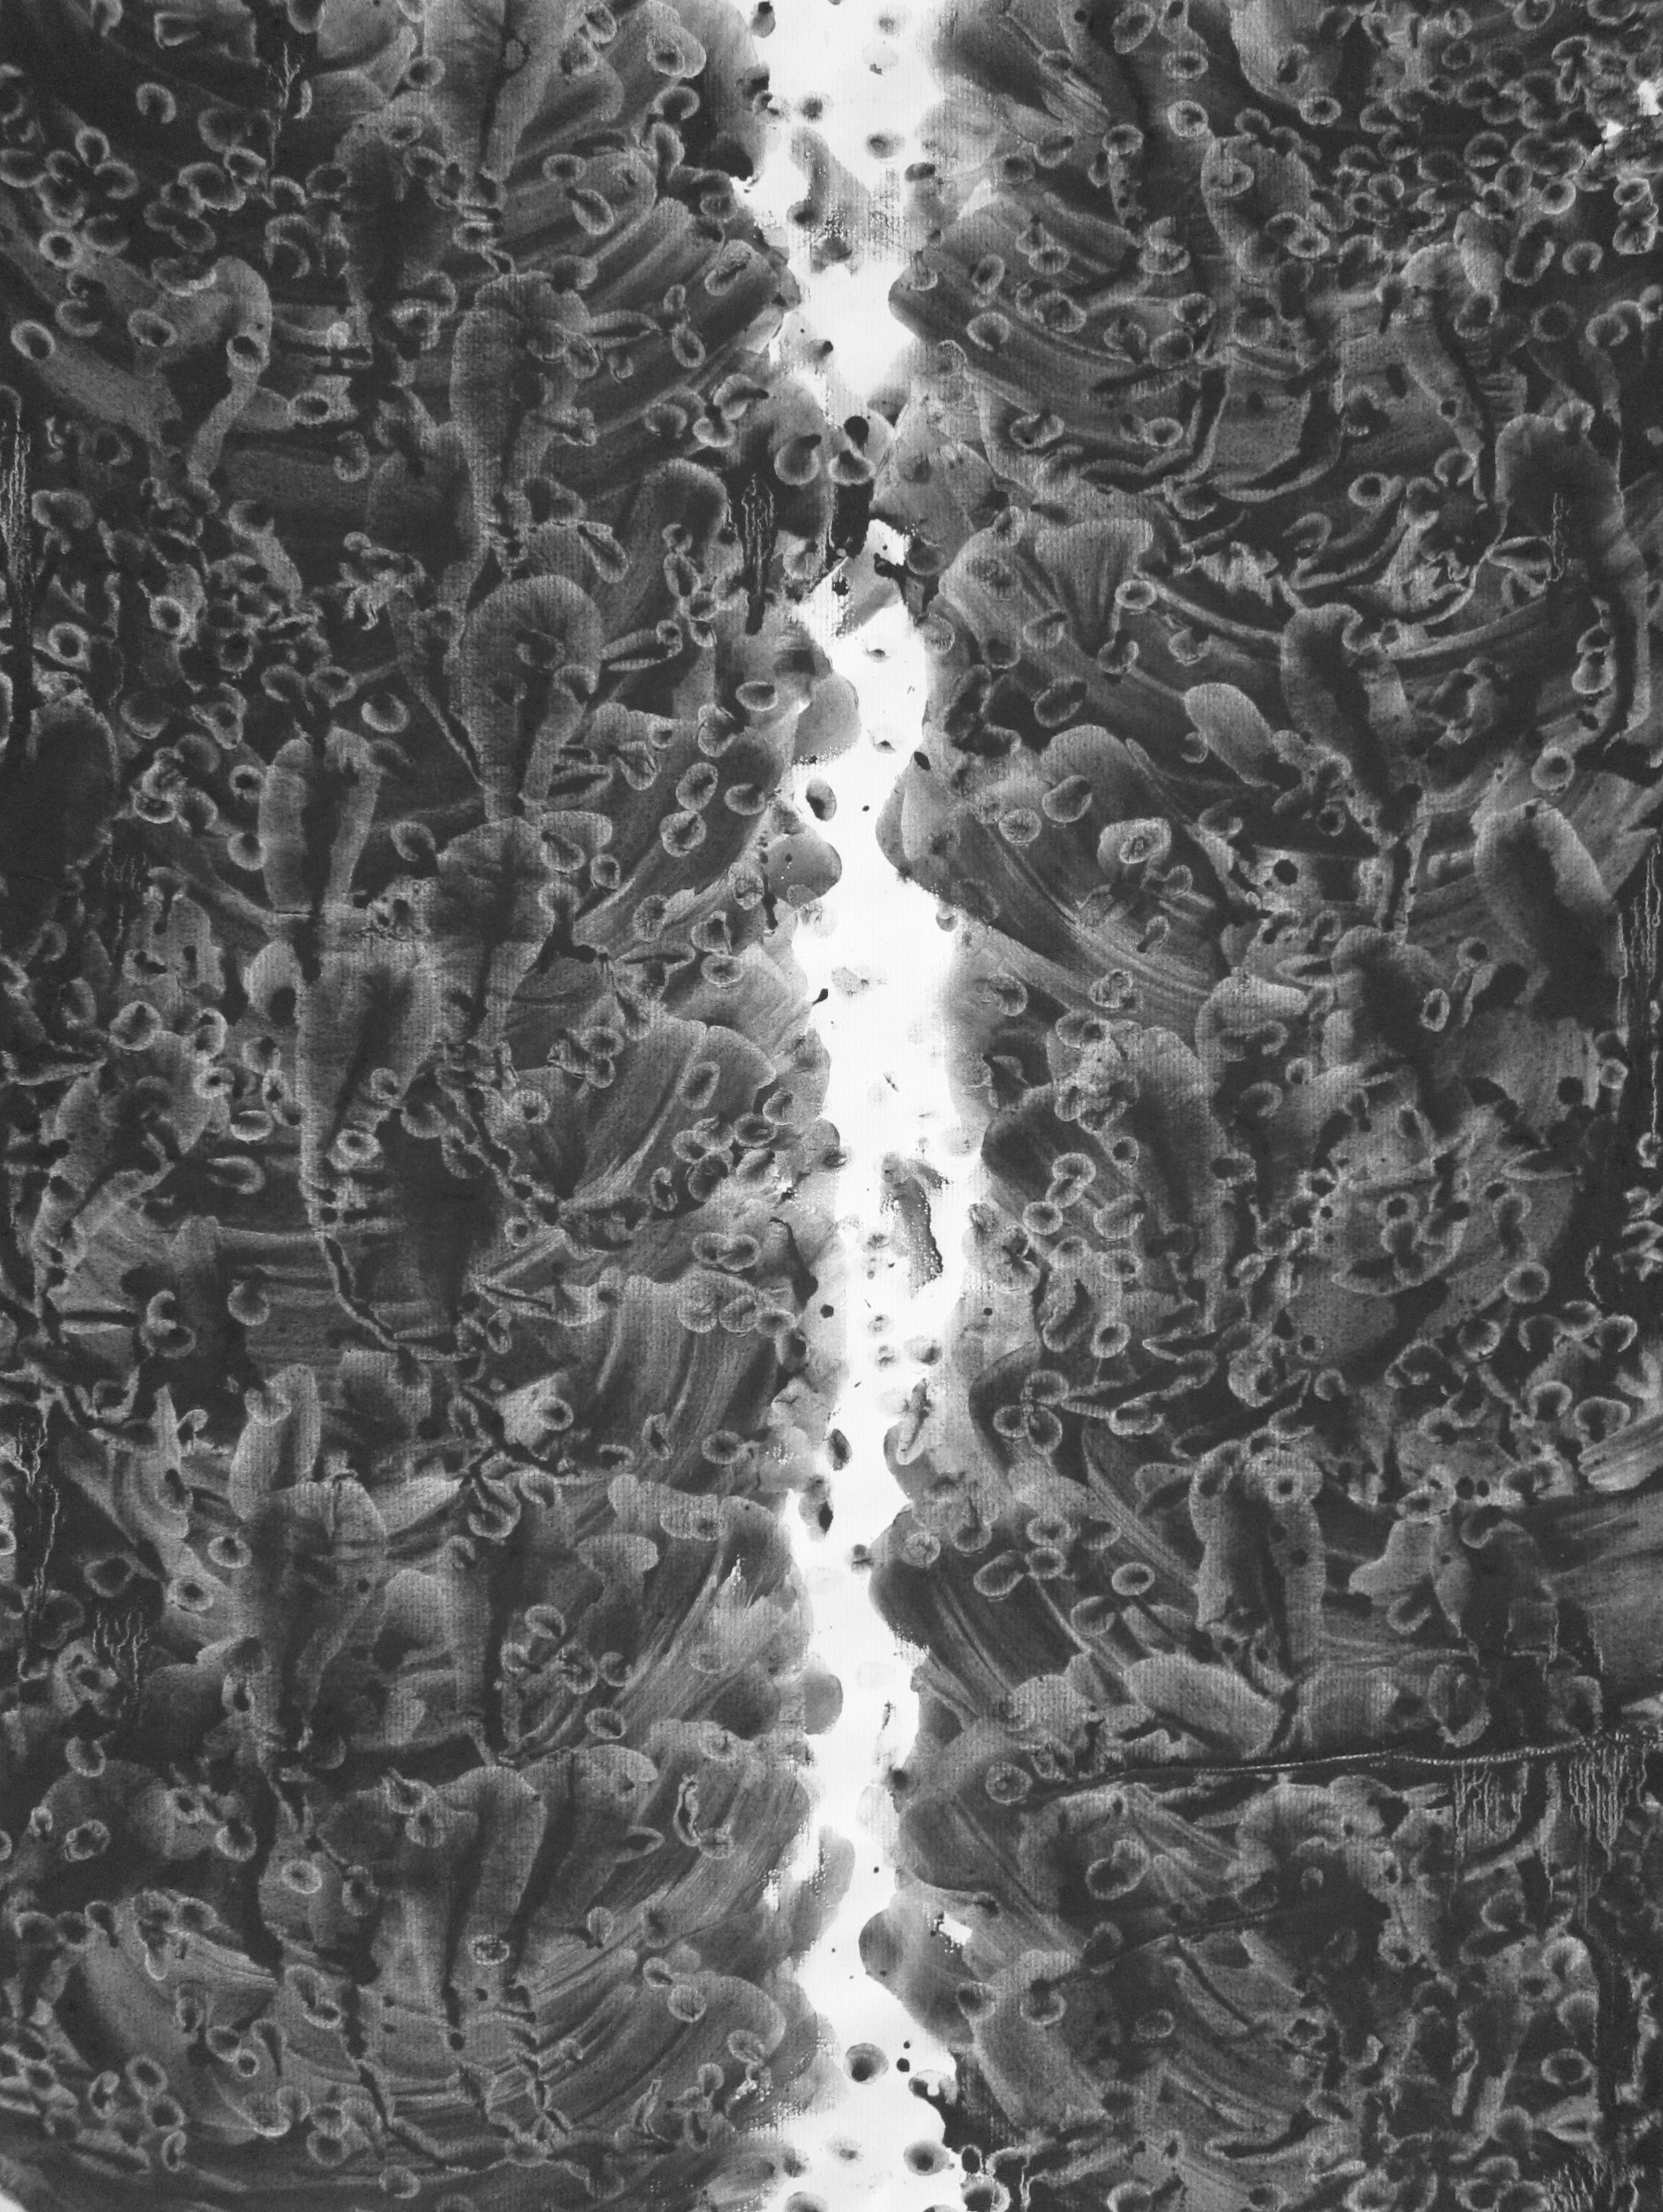 Rift  , 2014, Charcoal on paper, 24 x 18 in.